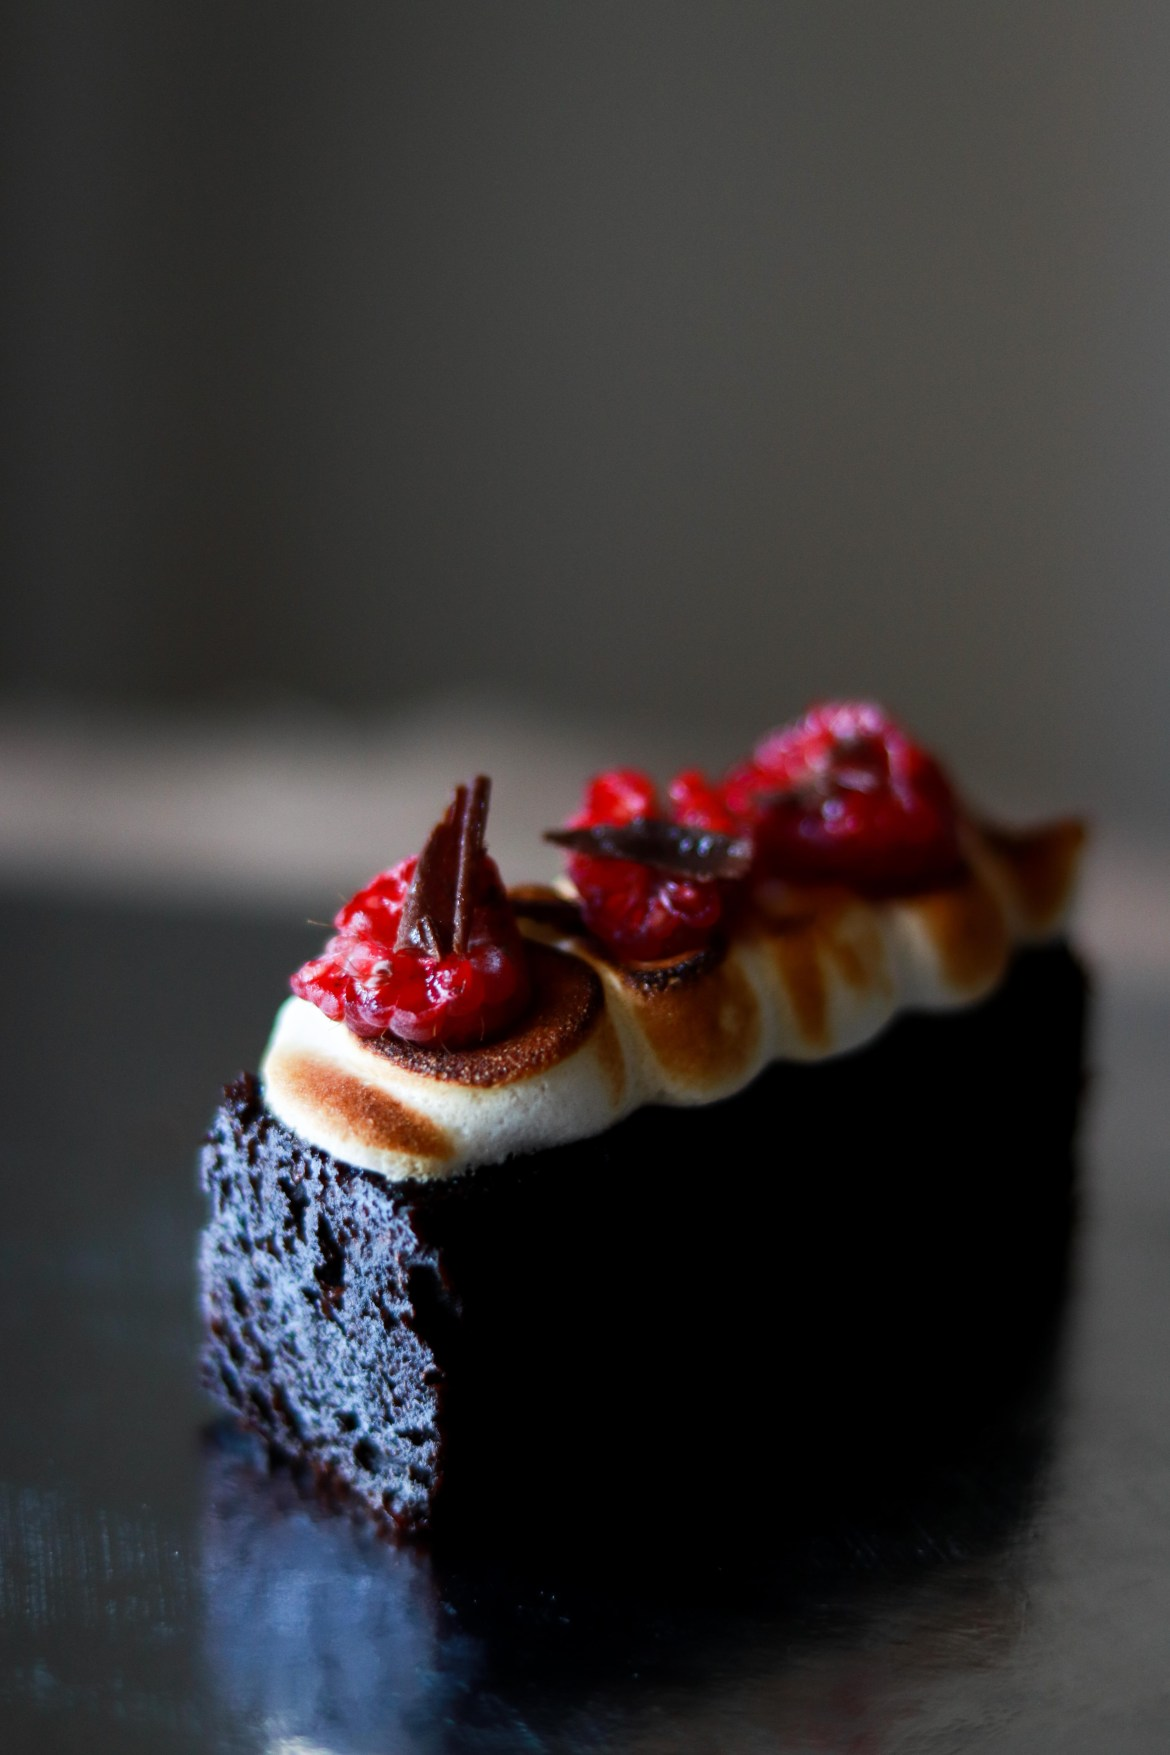 Chocolate_sour_cream_cake_with_meringue_raspberry_and_shaved_chocolate3